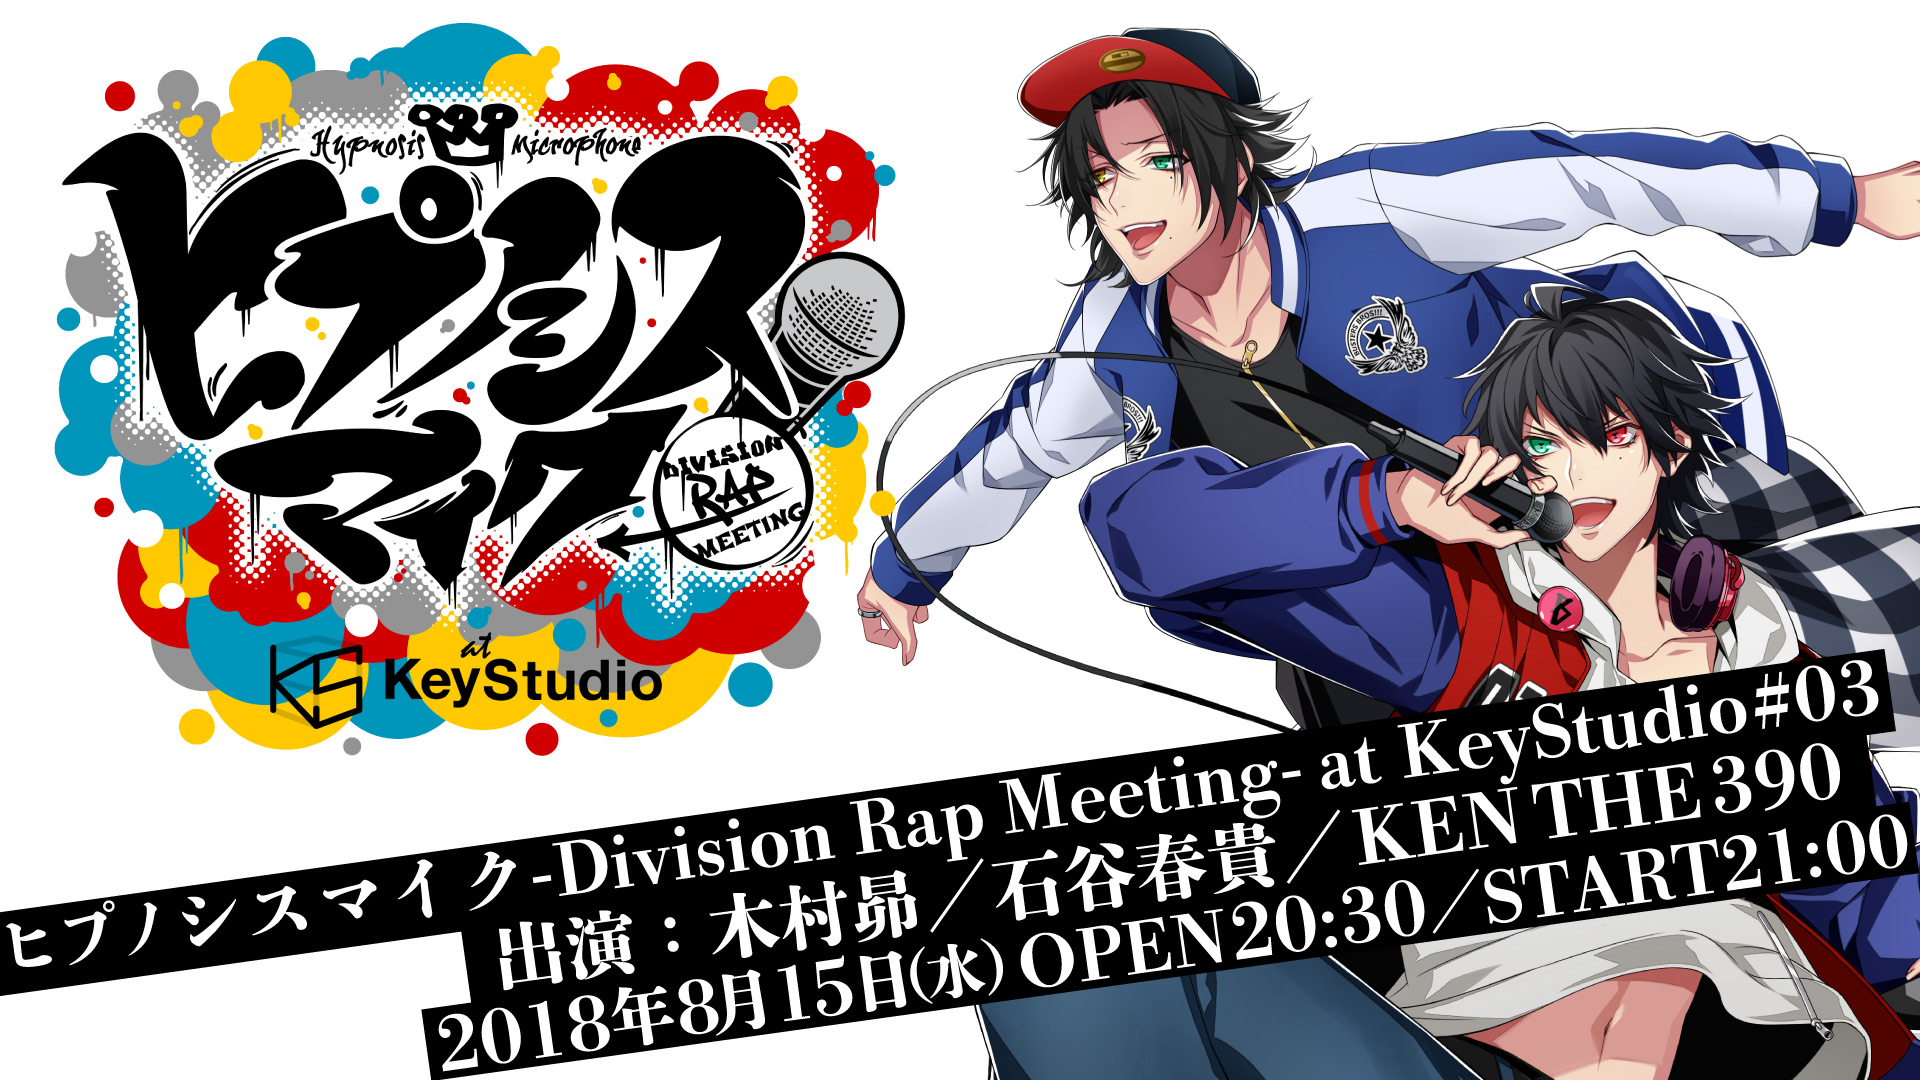 ヒプノシスマイク -Division Rap Meeting- at KeyStudio #03